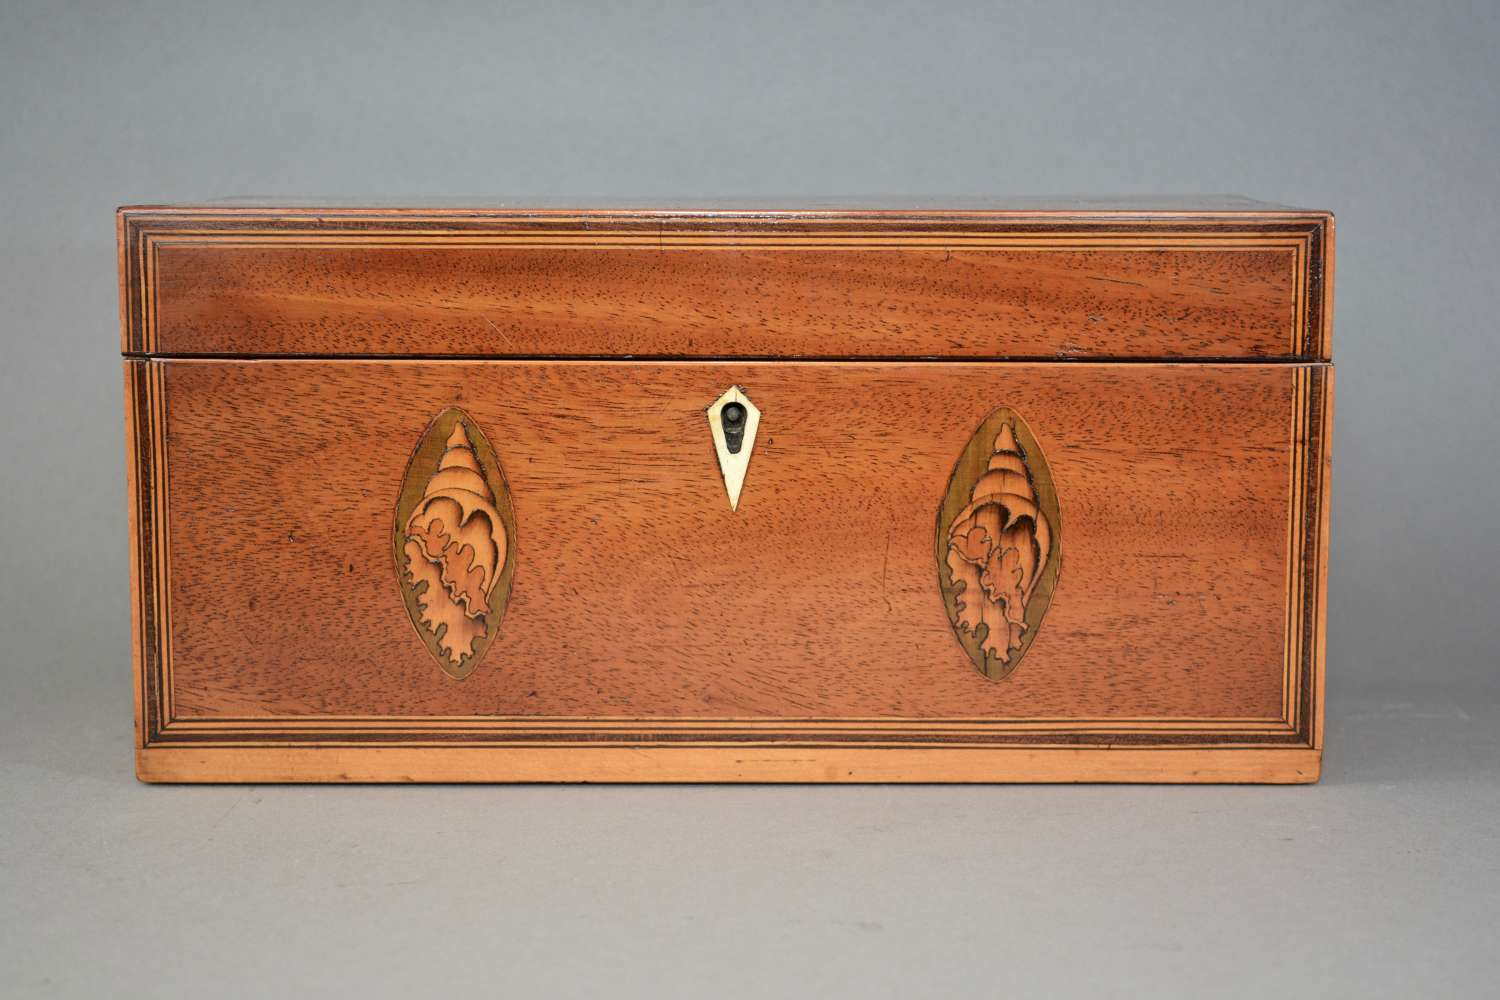 George III mahogany tea caddy with inlaid shell and flower motif c1800